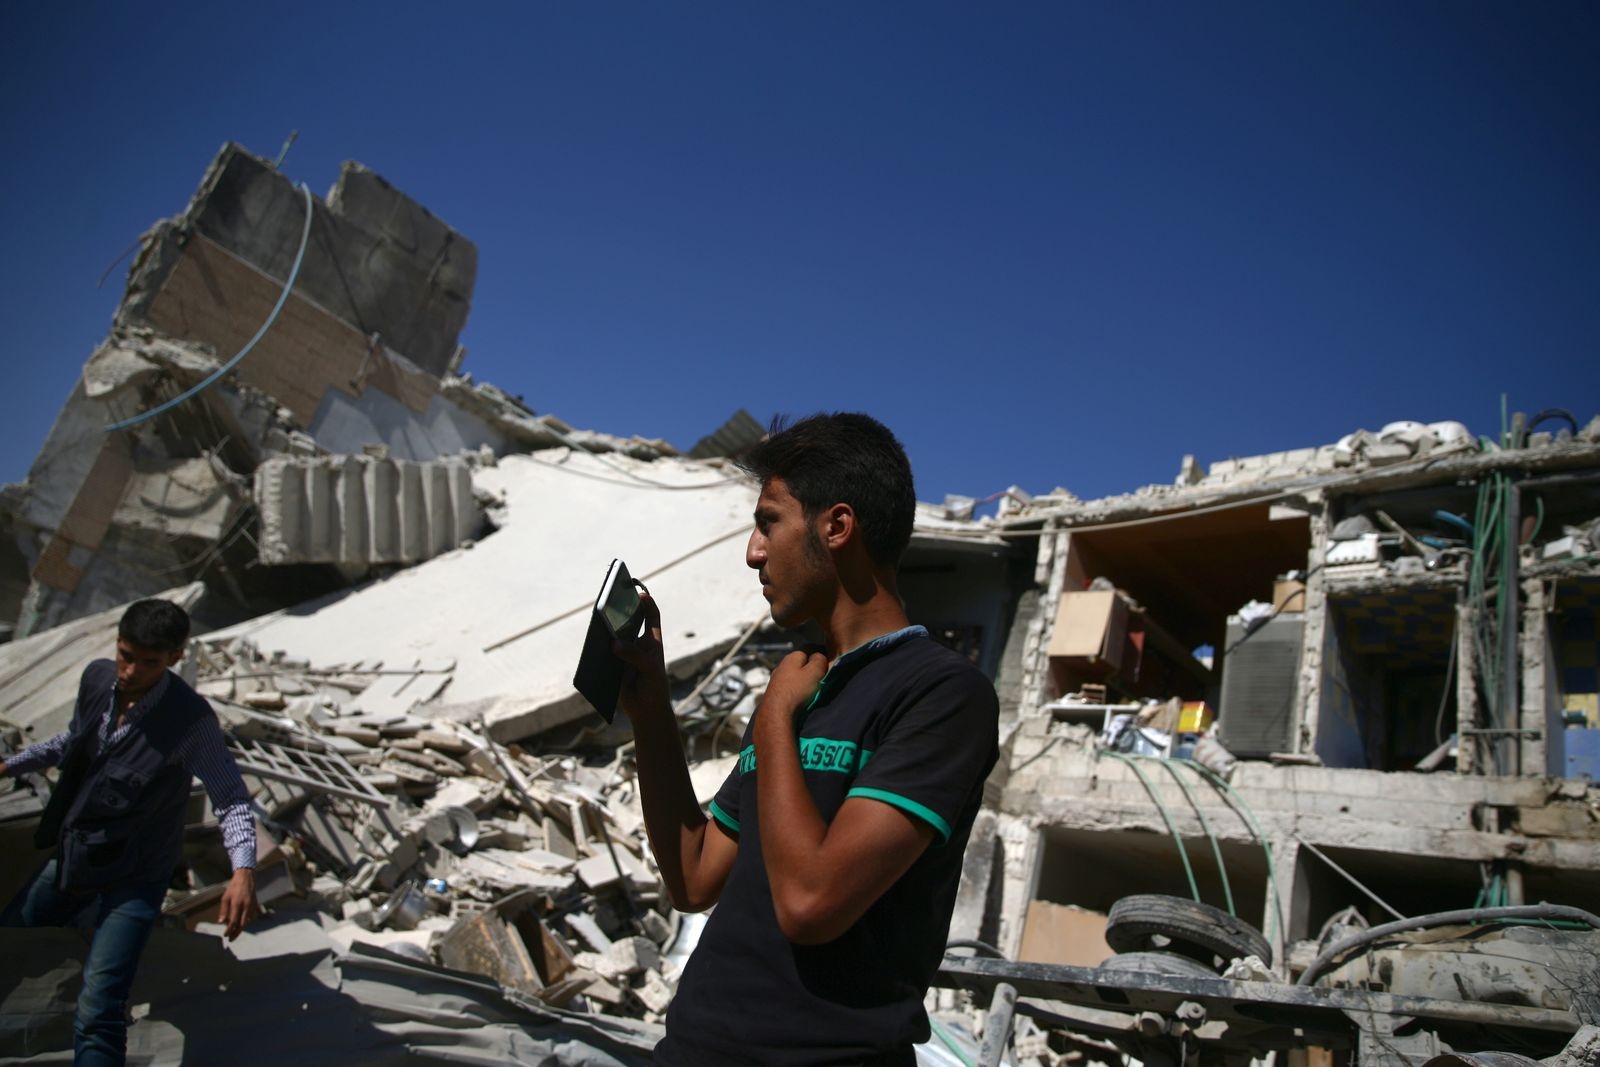 A man takes pictures with his mobile phone at a site by an airstrike in the rebel held Douma neighborhood of Damascus